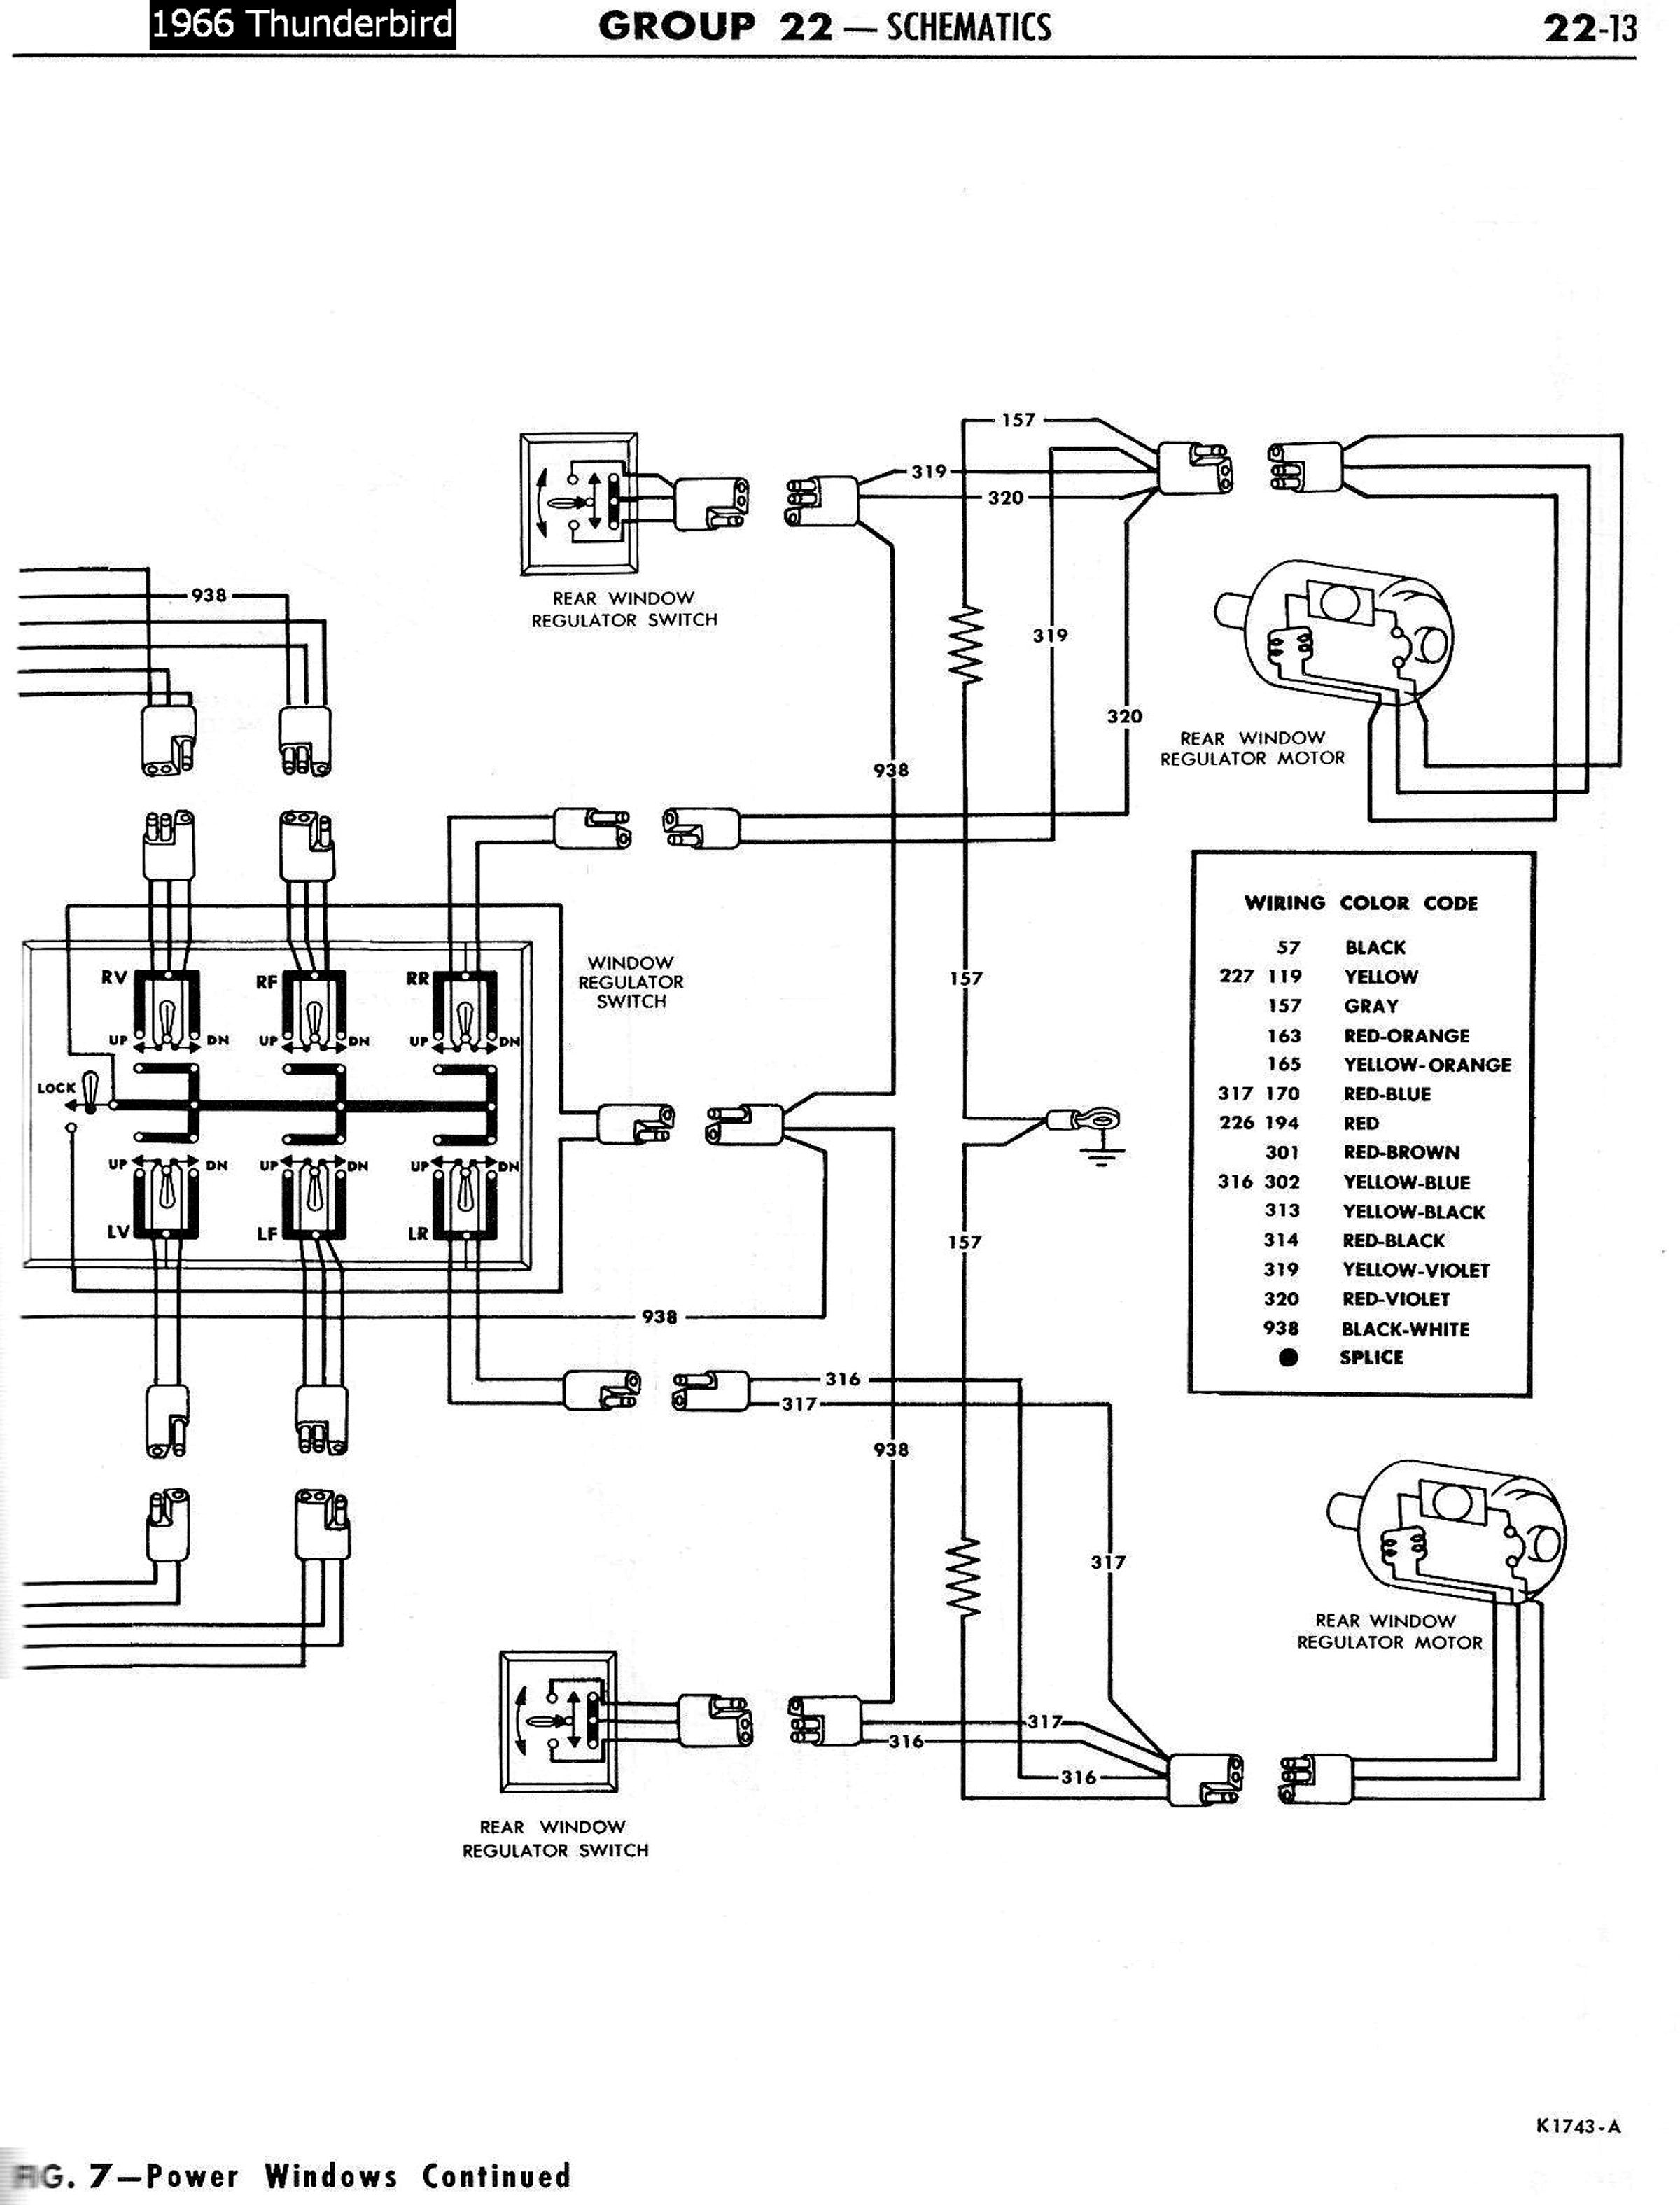 66TbirdPowerWindowsSchematicRight 1958 68 ford electrical schematics 1965 thunderbird wiring harness at alyssarenee.co